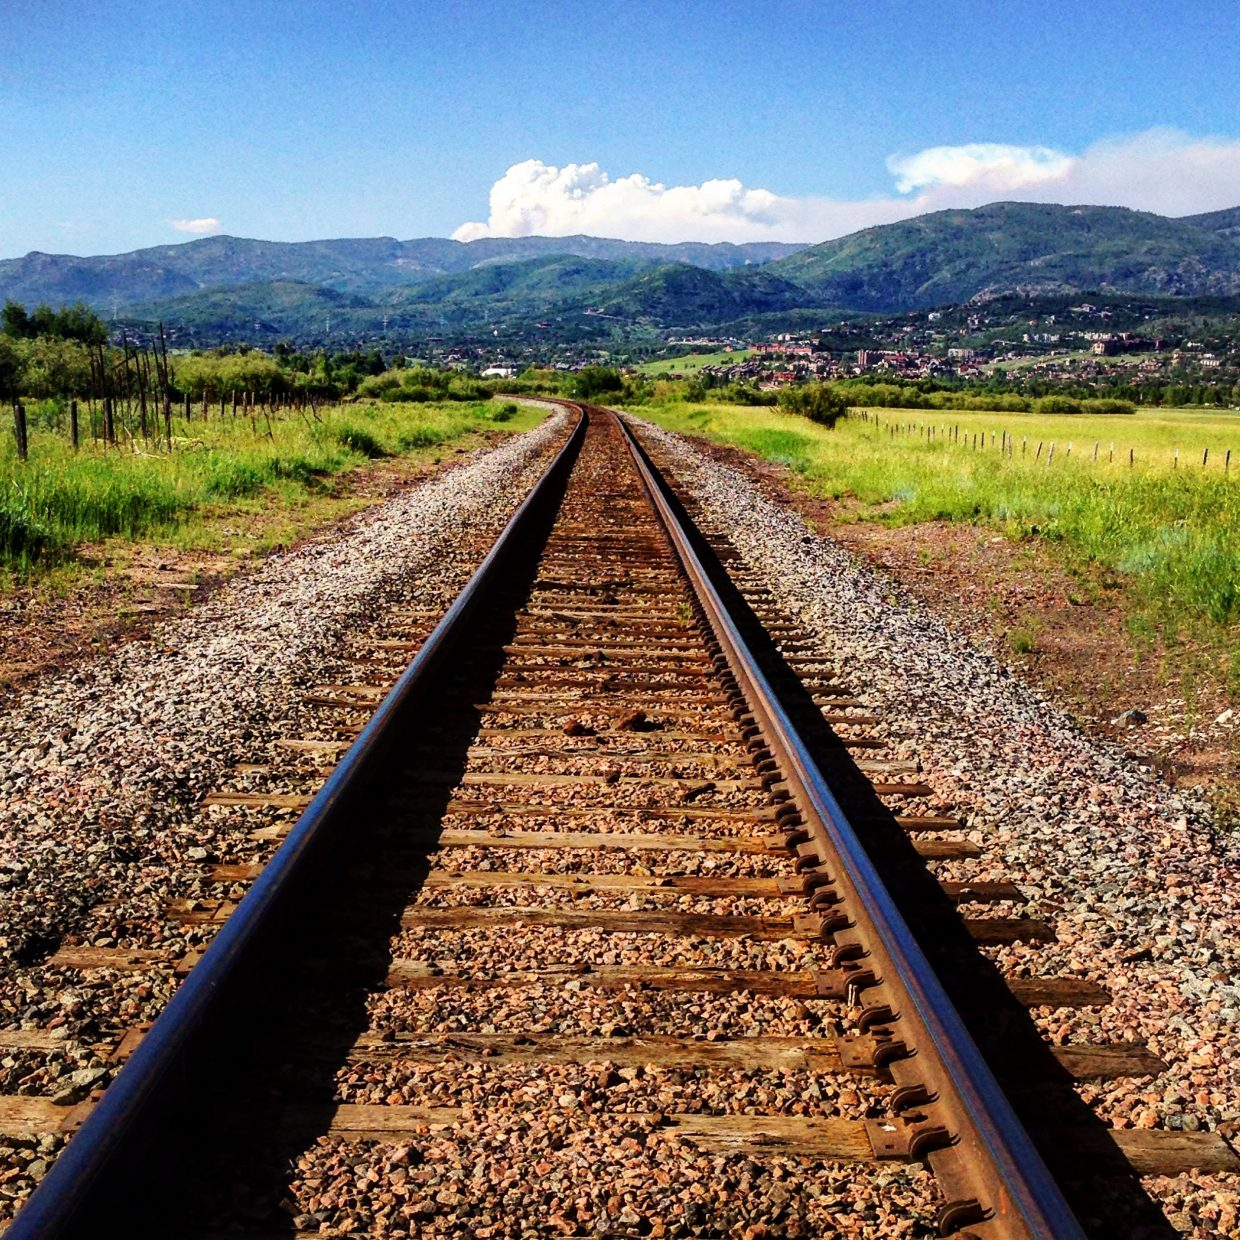 The Beaver Creek fire outside of Walden as seen from the railroad tracks near Chuck Lewis SWA, Steamboat Springs, Colorado, Monday, June 27th, 2016. Submitted by Jacquelyne Cox.